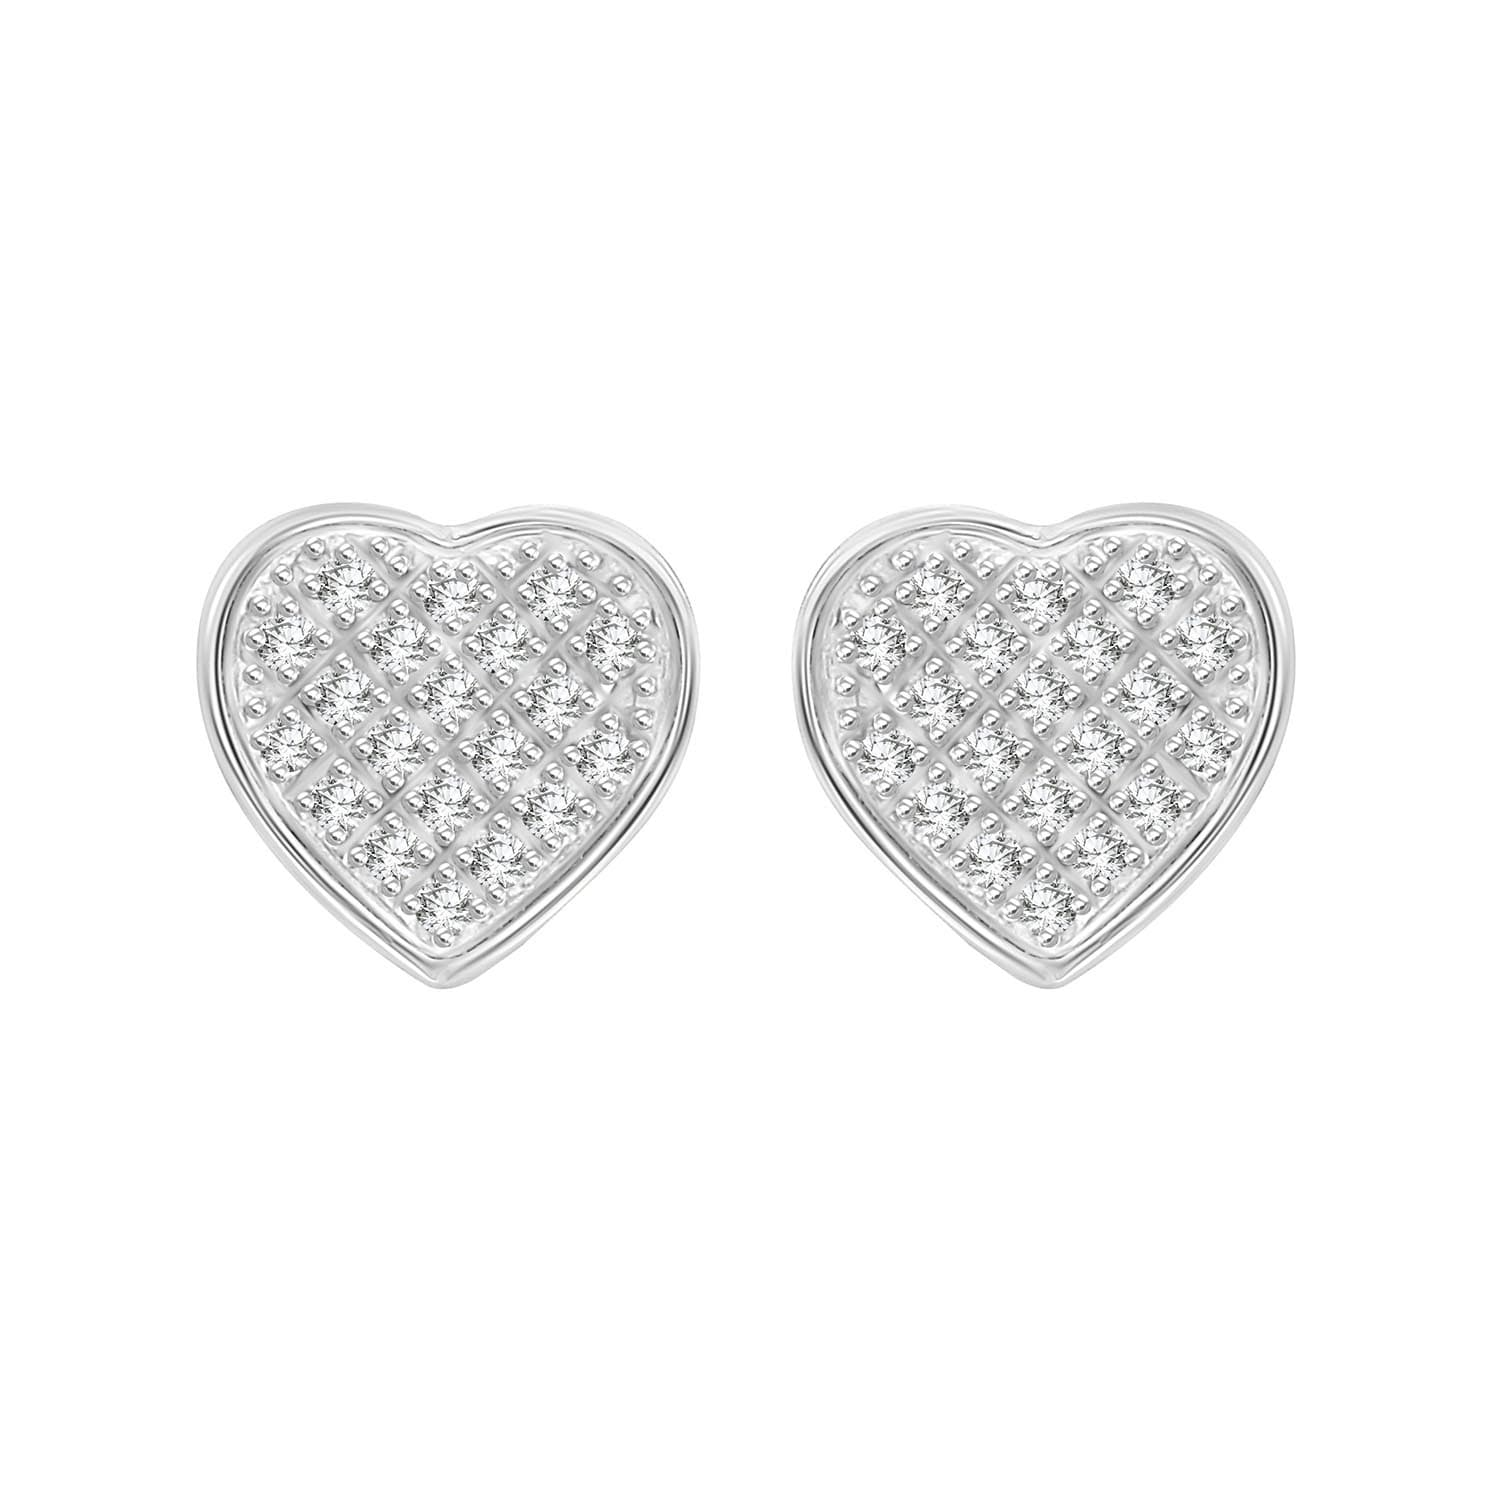 16848931f Shop 1/6 cttw Round Natural Diamond Heart Shape Unisex Yuva Stud Earrings  With Screw Back 10K White Gold - Free Shipping Today - Overstock - 21731459